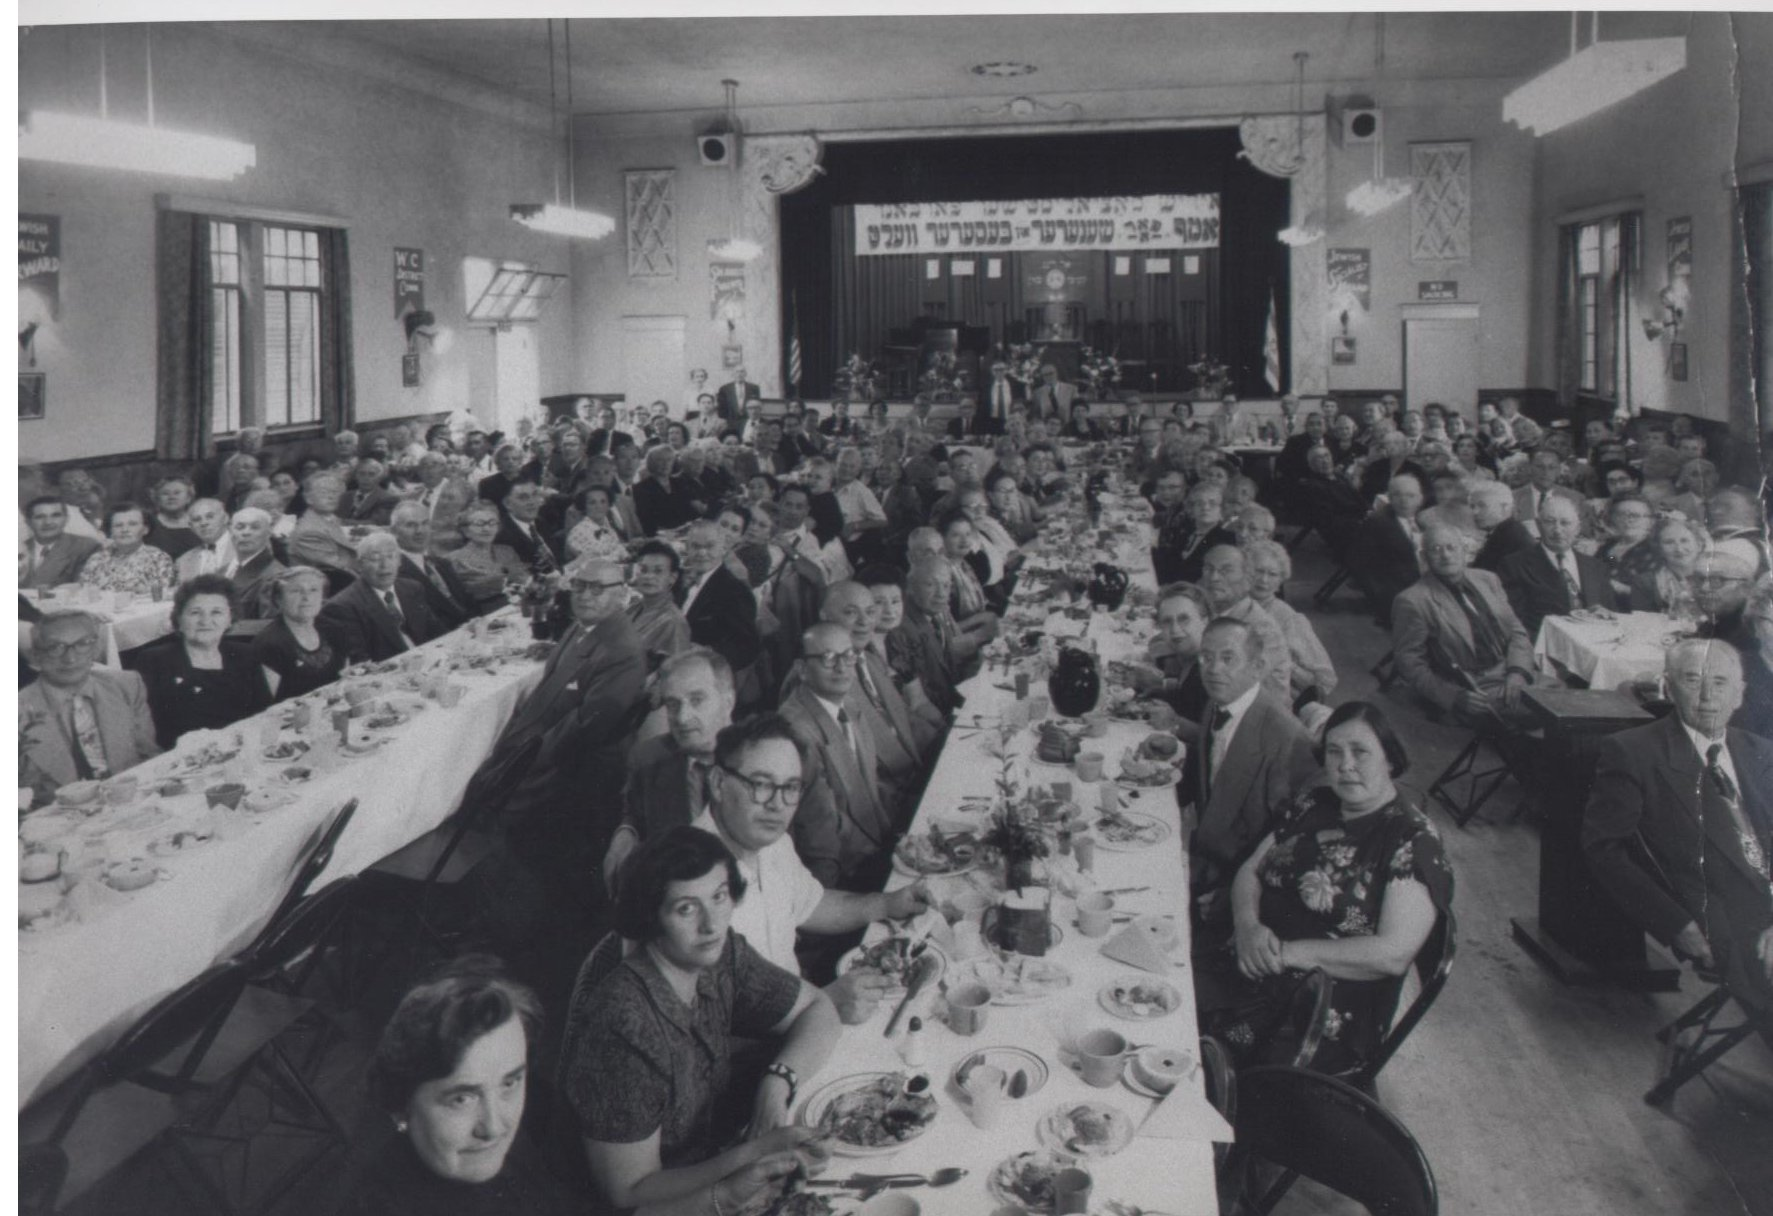 A banquet at the Vladeck Center in the Boyle Heights section of East Los Angeles, c. 1950. Photo courtesy of the Los Angeles WC/AR.